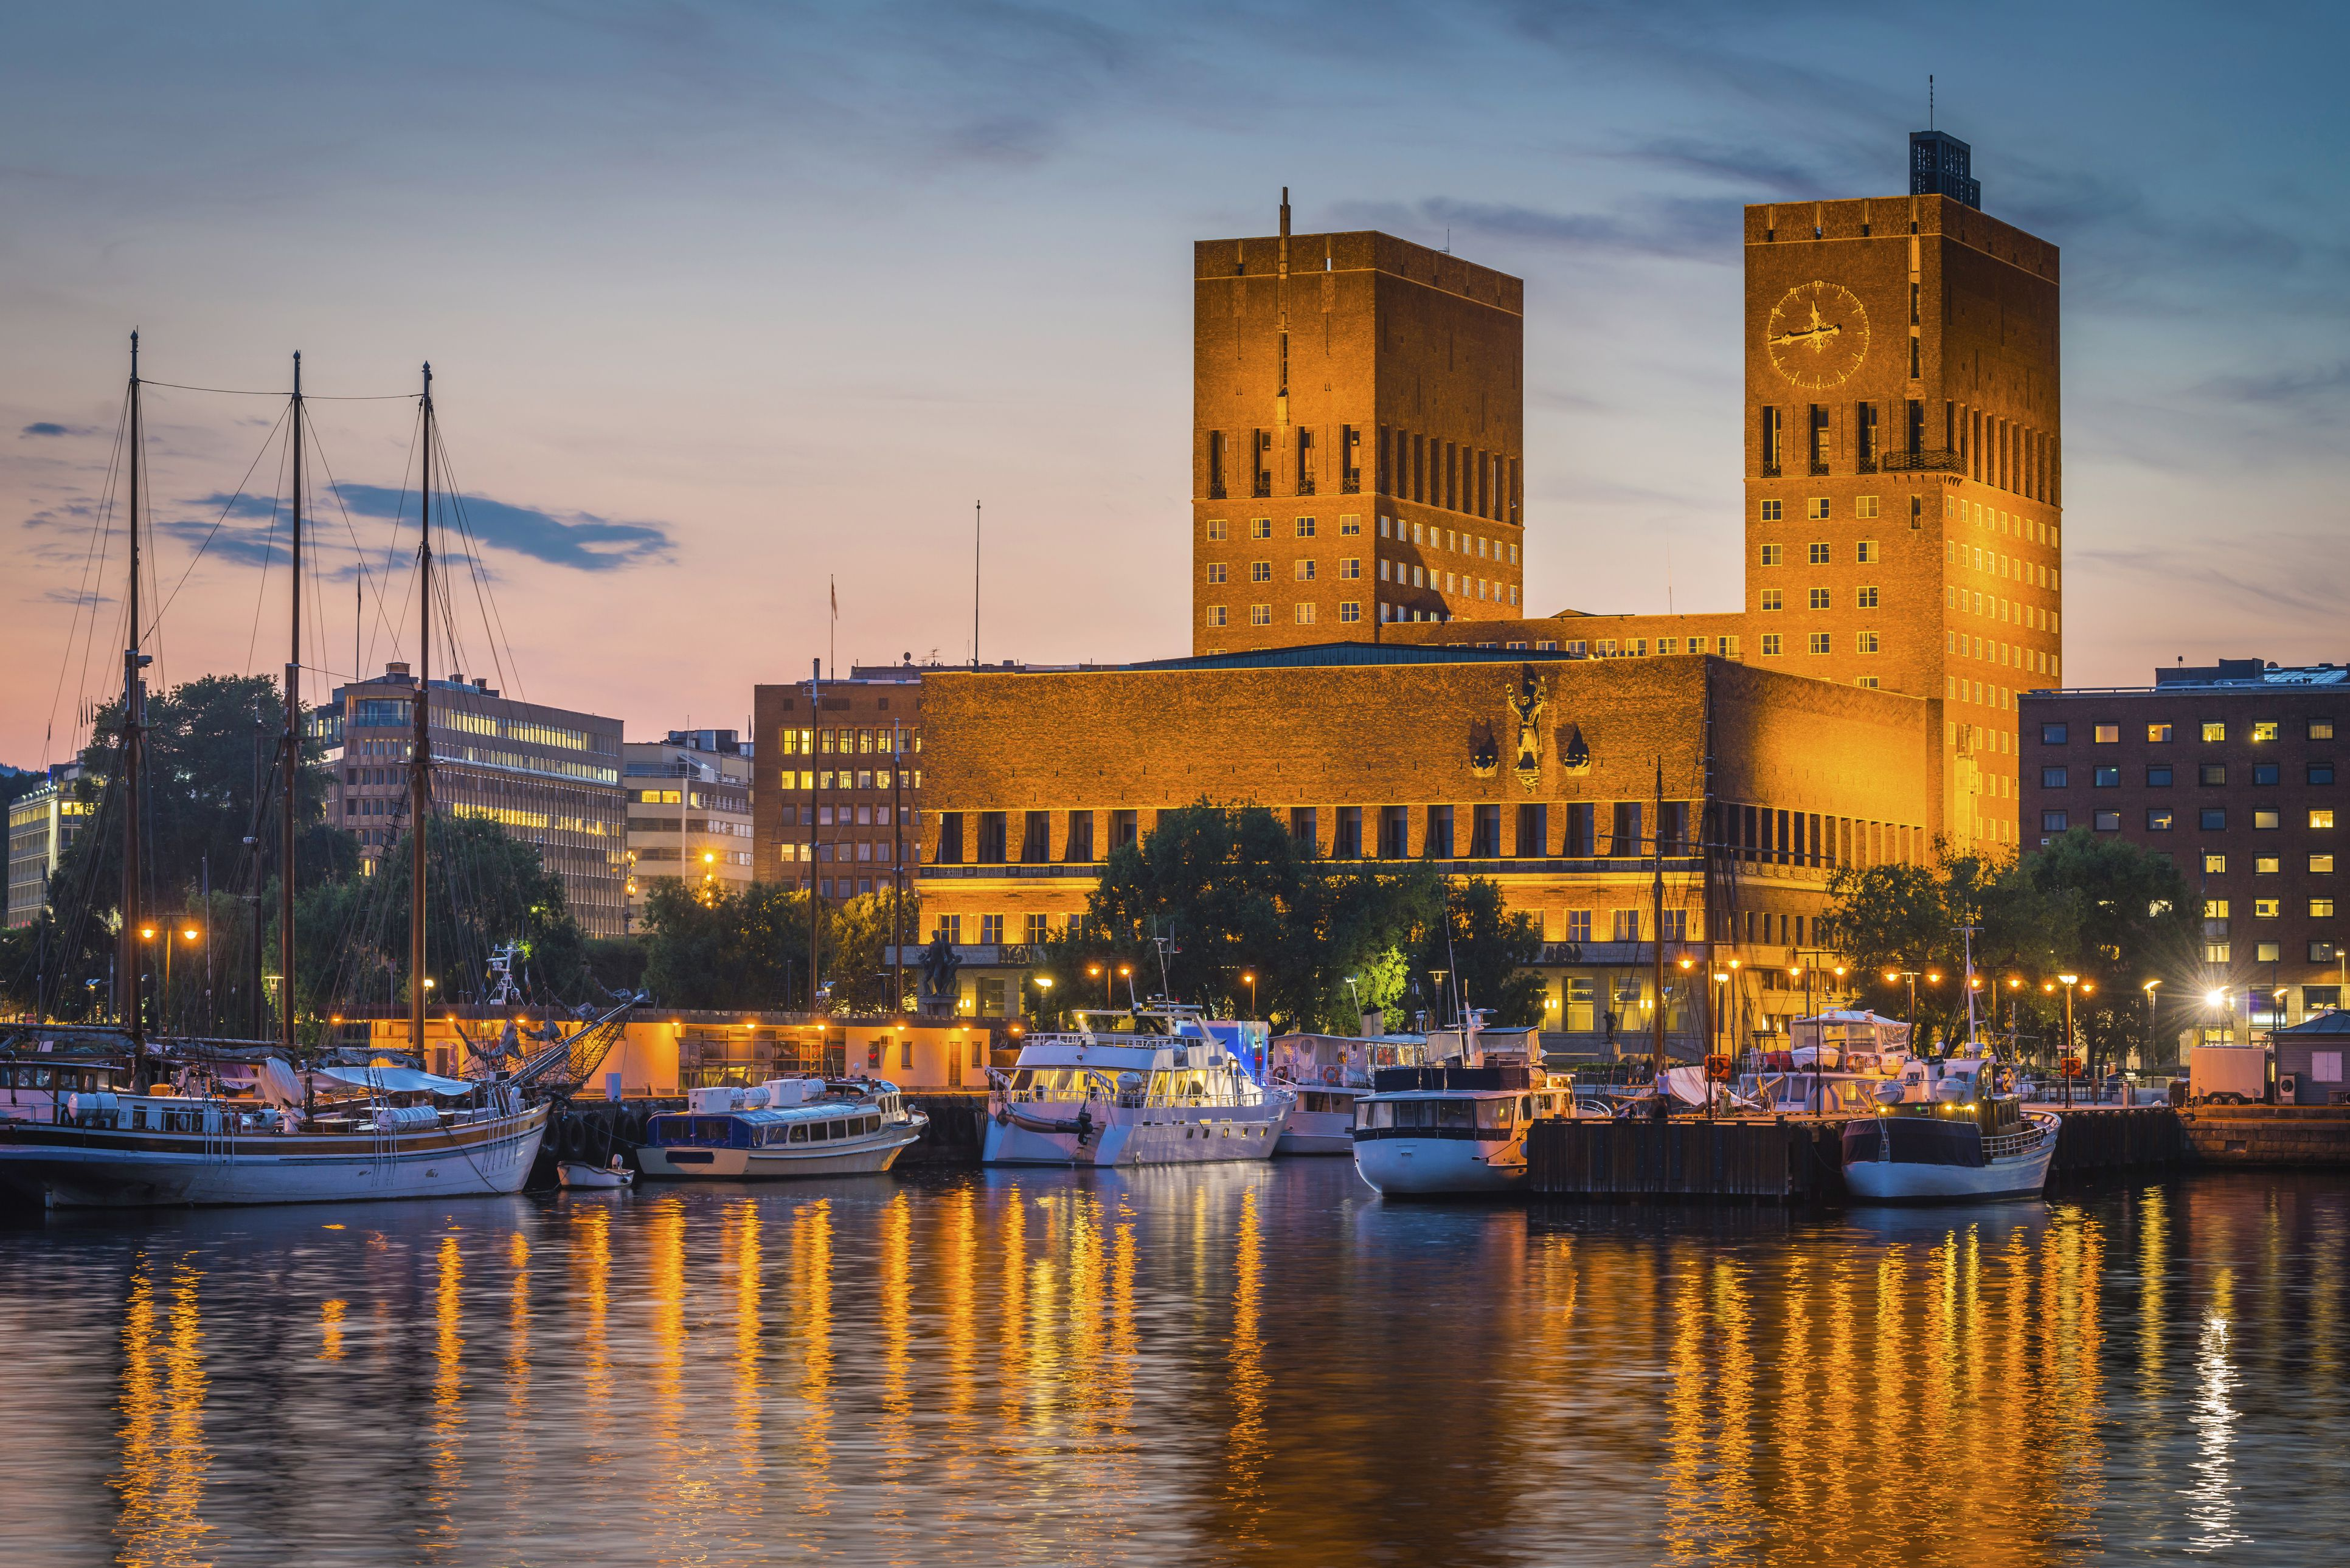 Towers of Oslo's City Hall, harbor view at sunset